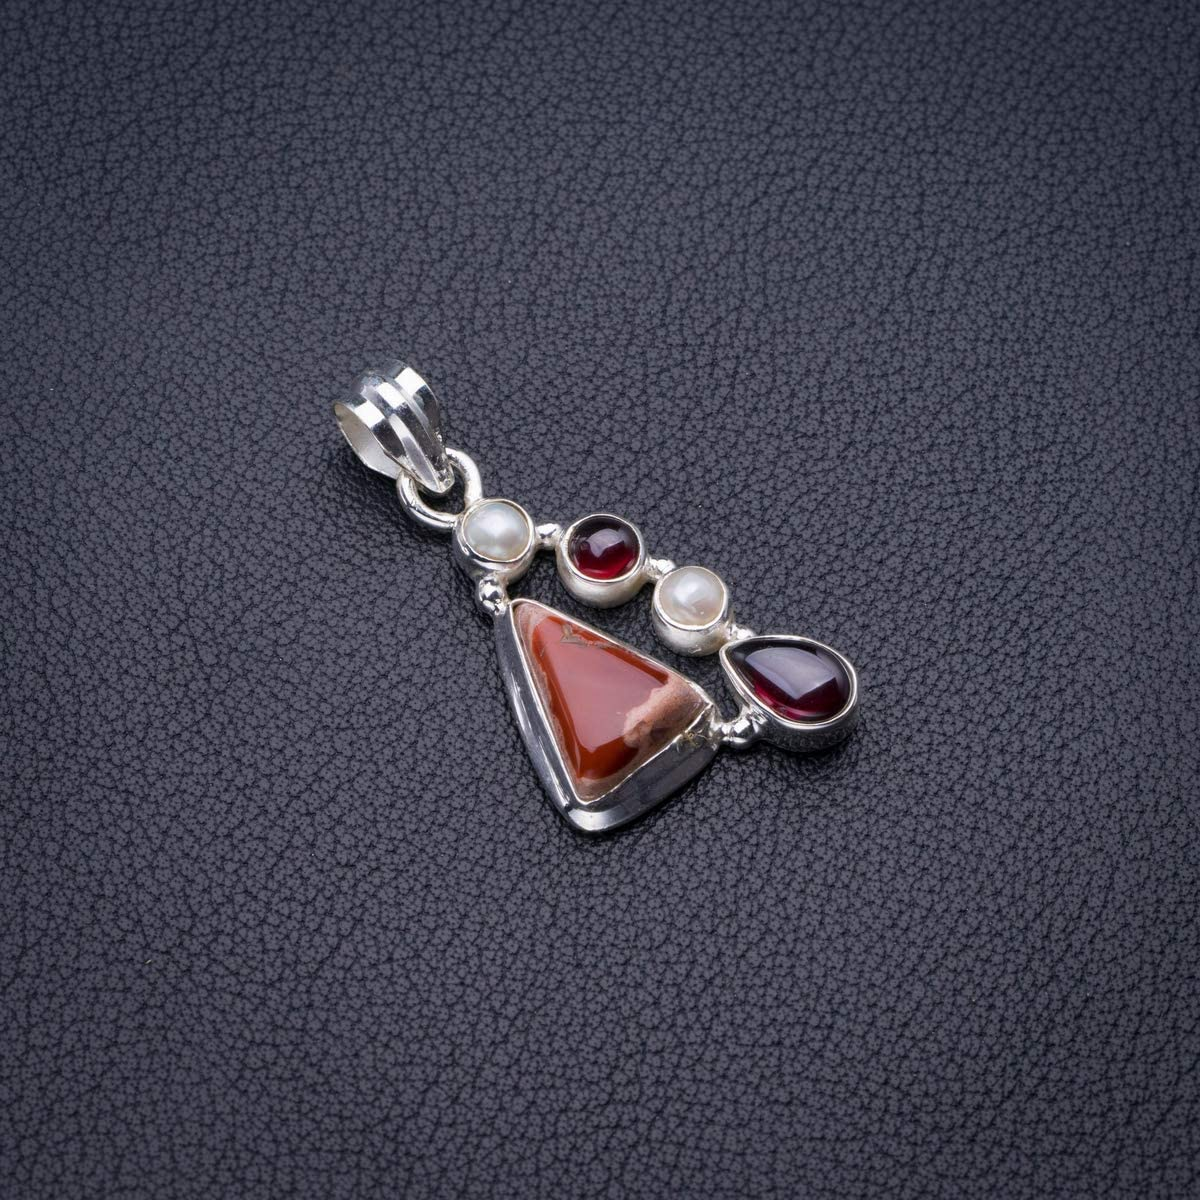 Natural Mexican Opal,River Pearl And Amethyst Handmade 925 Sterling Silver Pendant 1.5 D2774